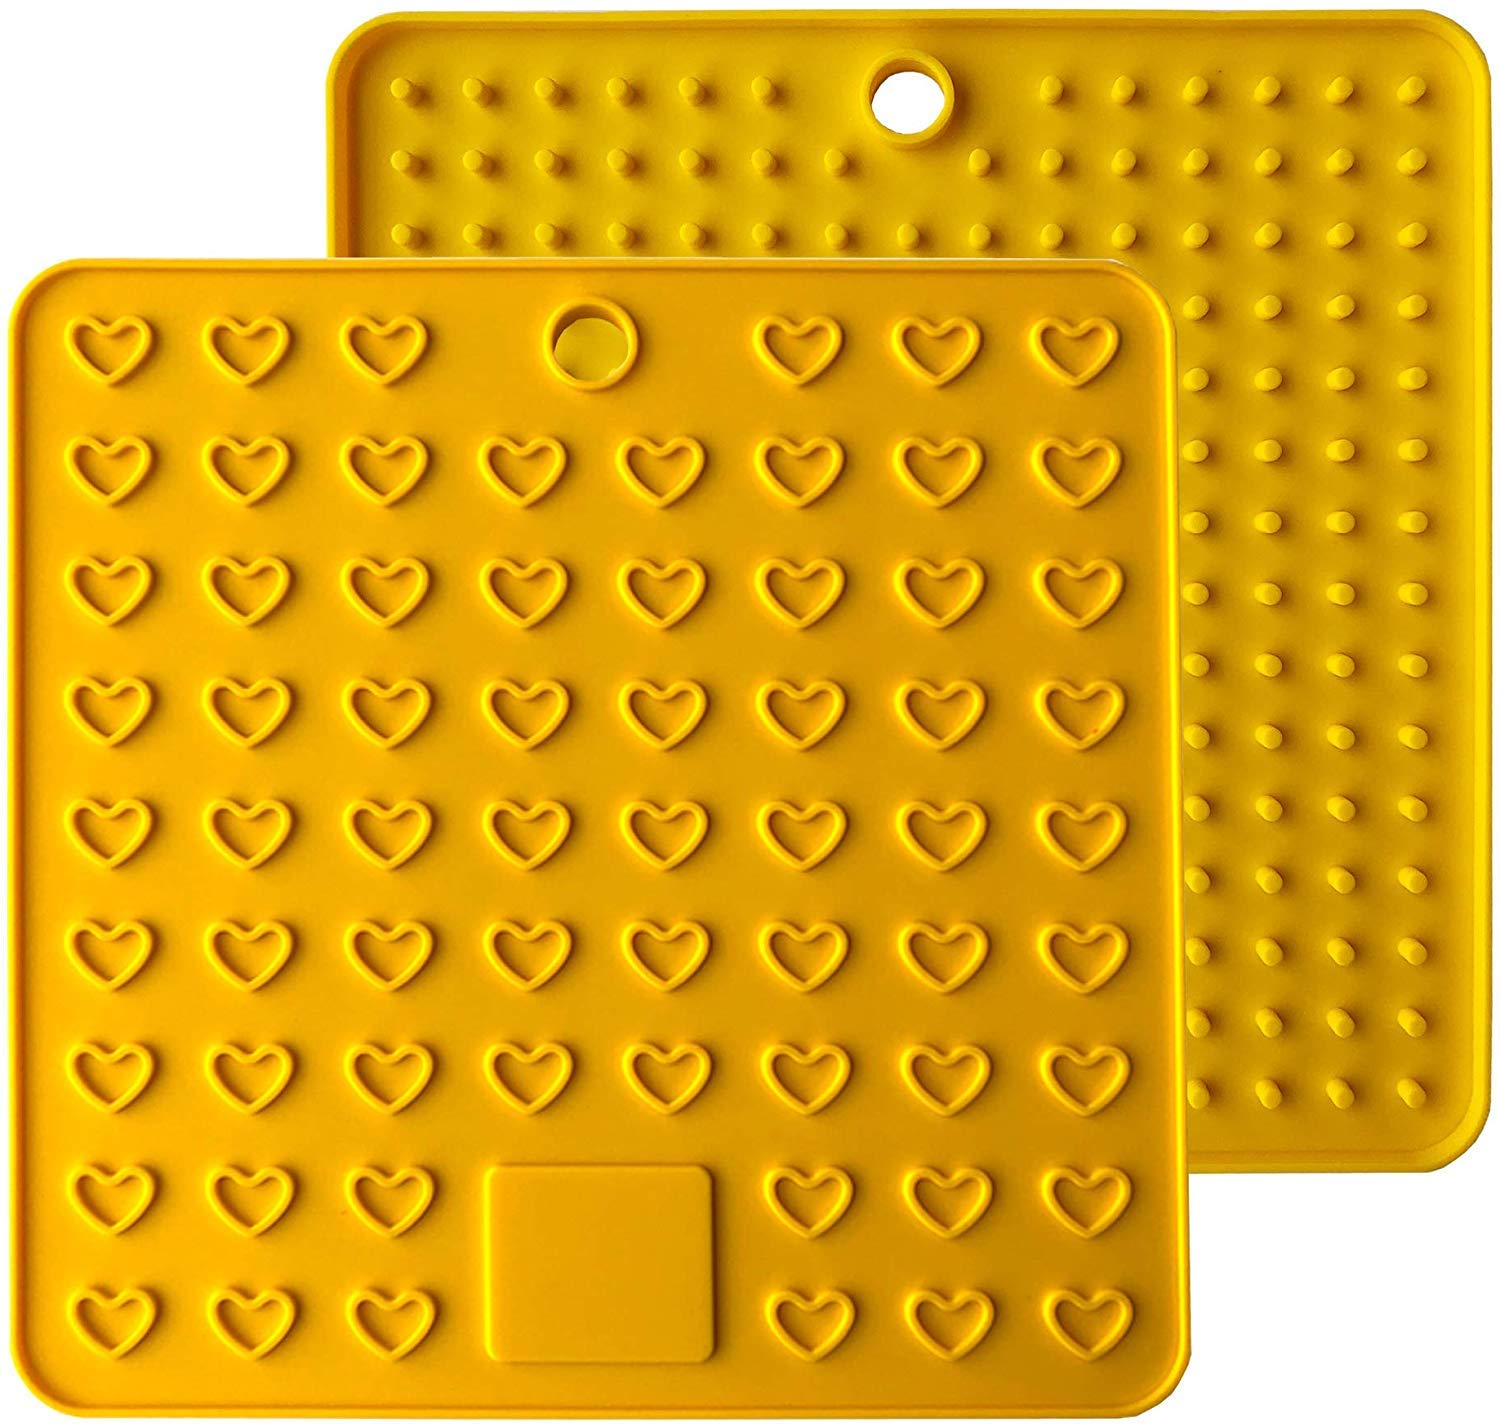 Fullgaden Multipurpose Silicone Pot Holders, Trivets, Jar Openers, Spoon Rests – Extra Thick Protection – Set of 2, Yellow